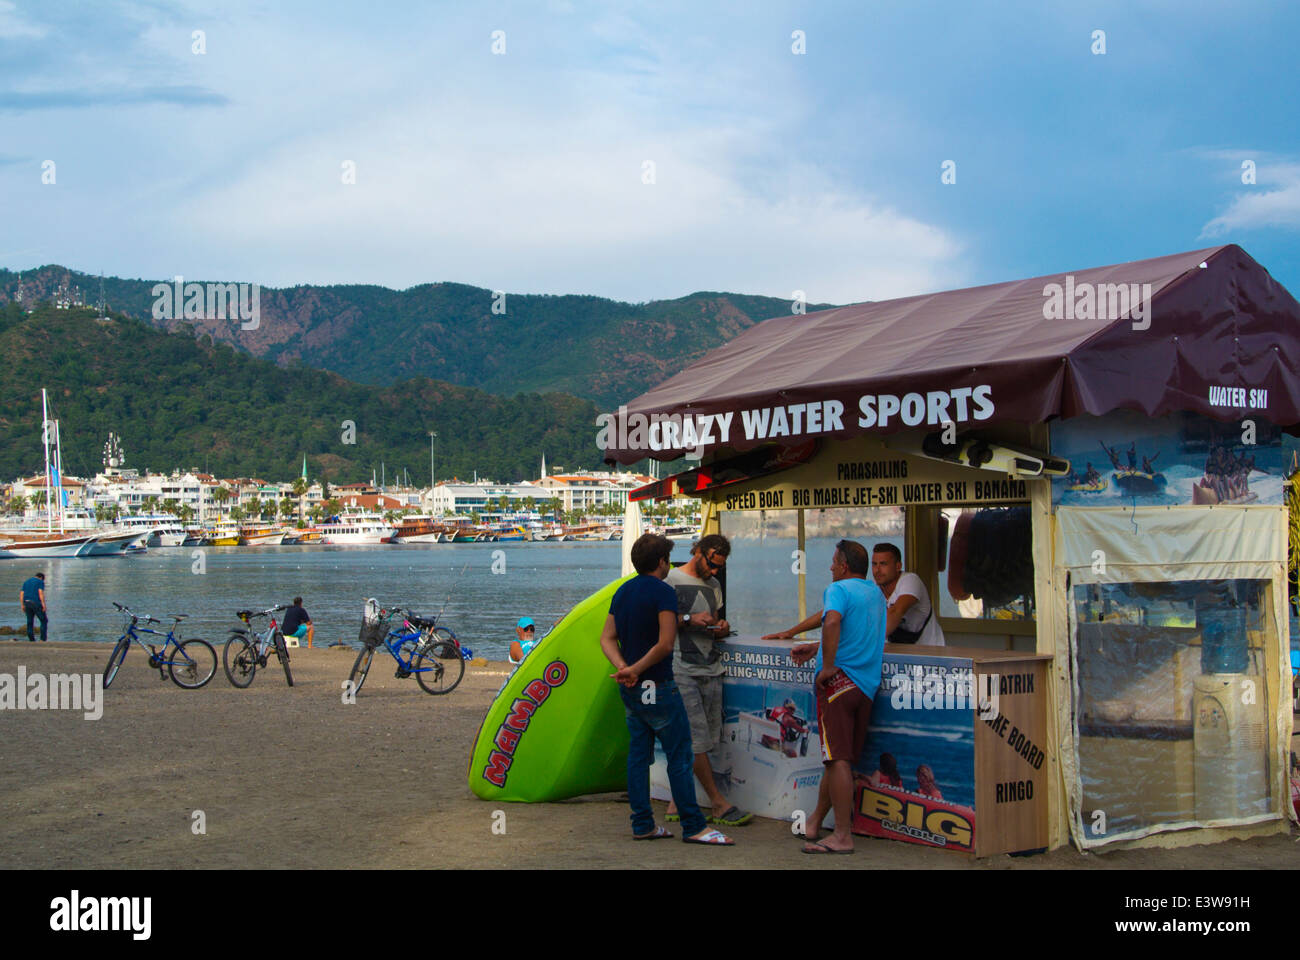 Watersports equipment rental, Kordon promenade, beach, Marmaris, Mugla province, Turkey, Asia Minor - Stock Image